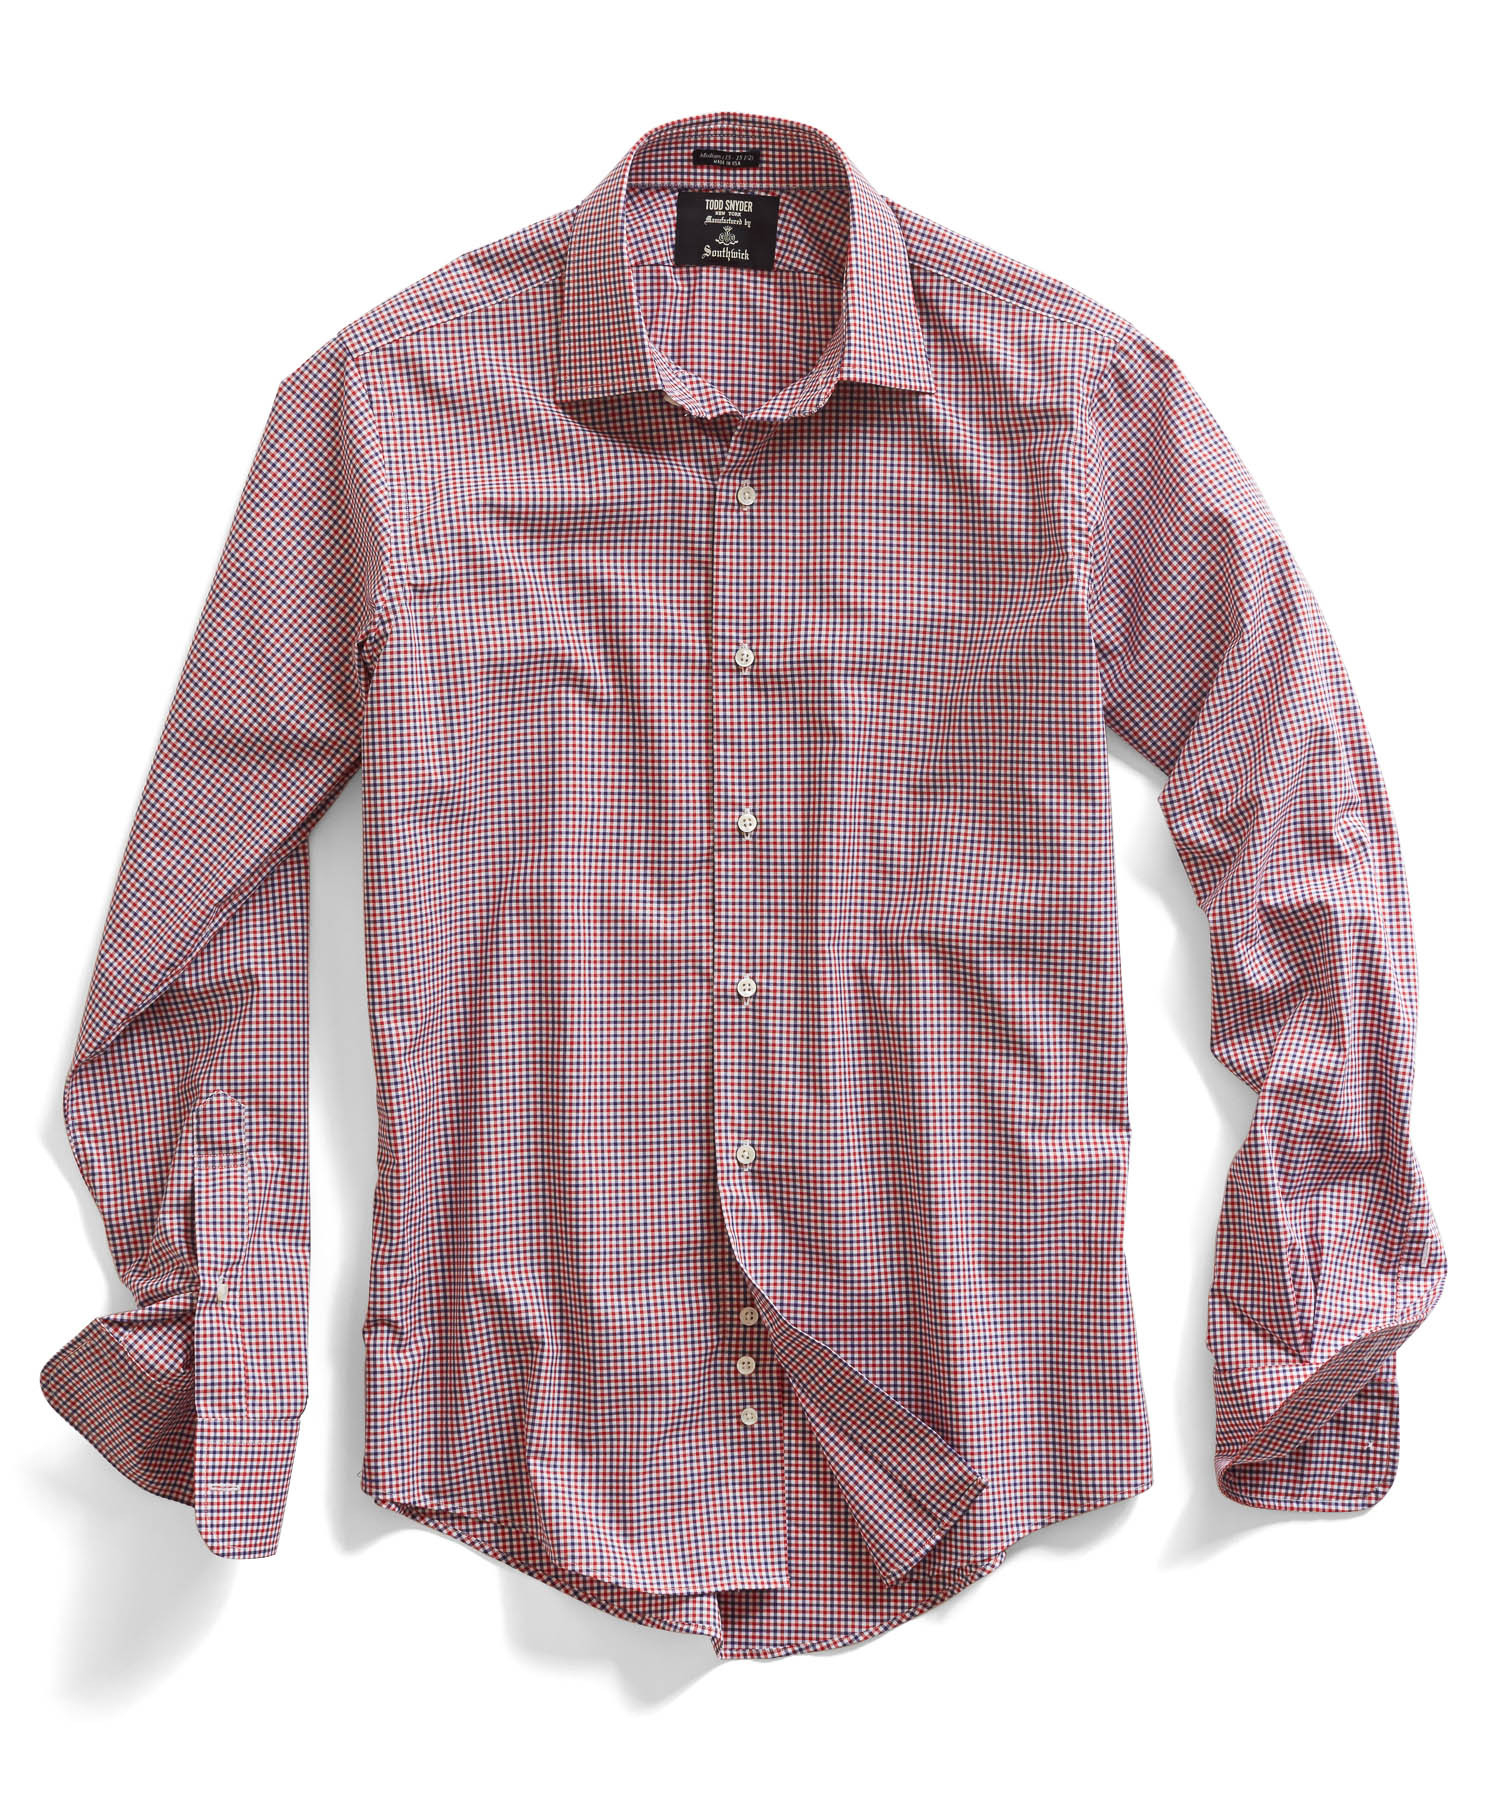 Todd snyder red mini gingham dress shirt in red for men lyst for Men s red gingham dress shirt